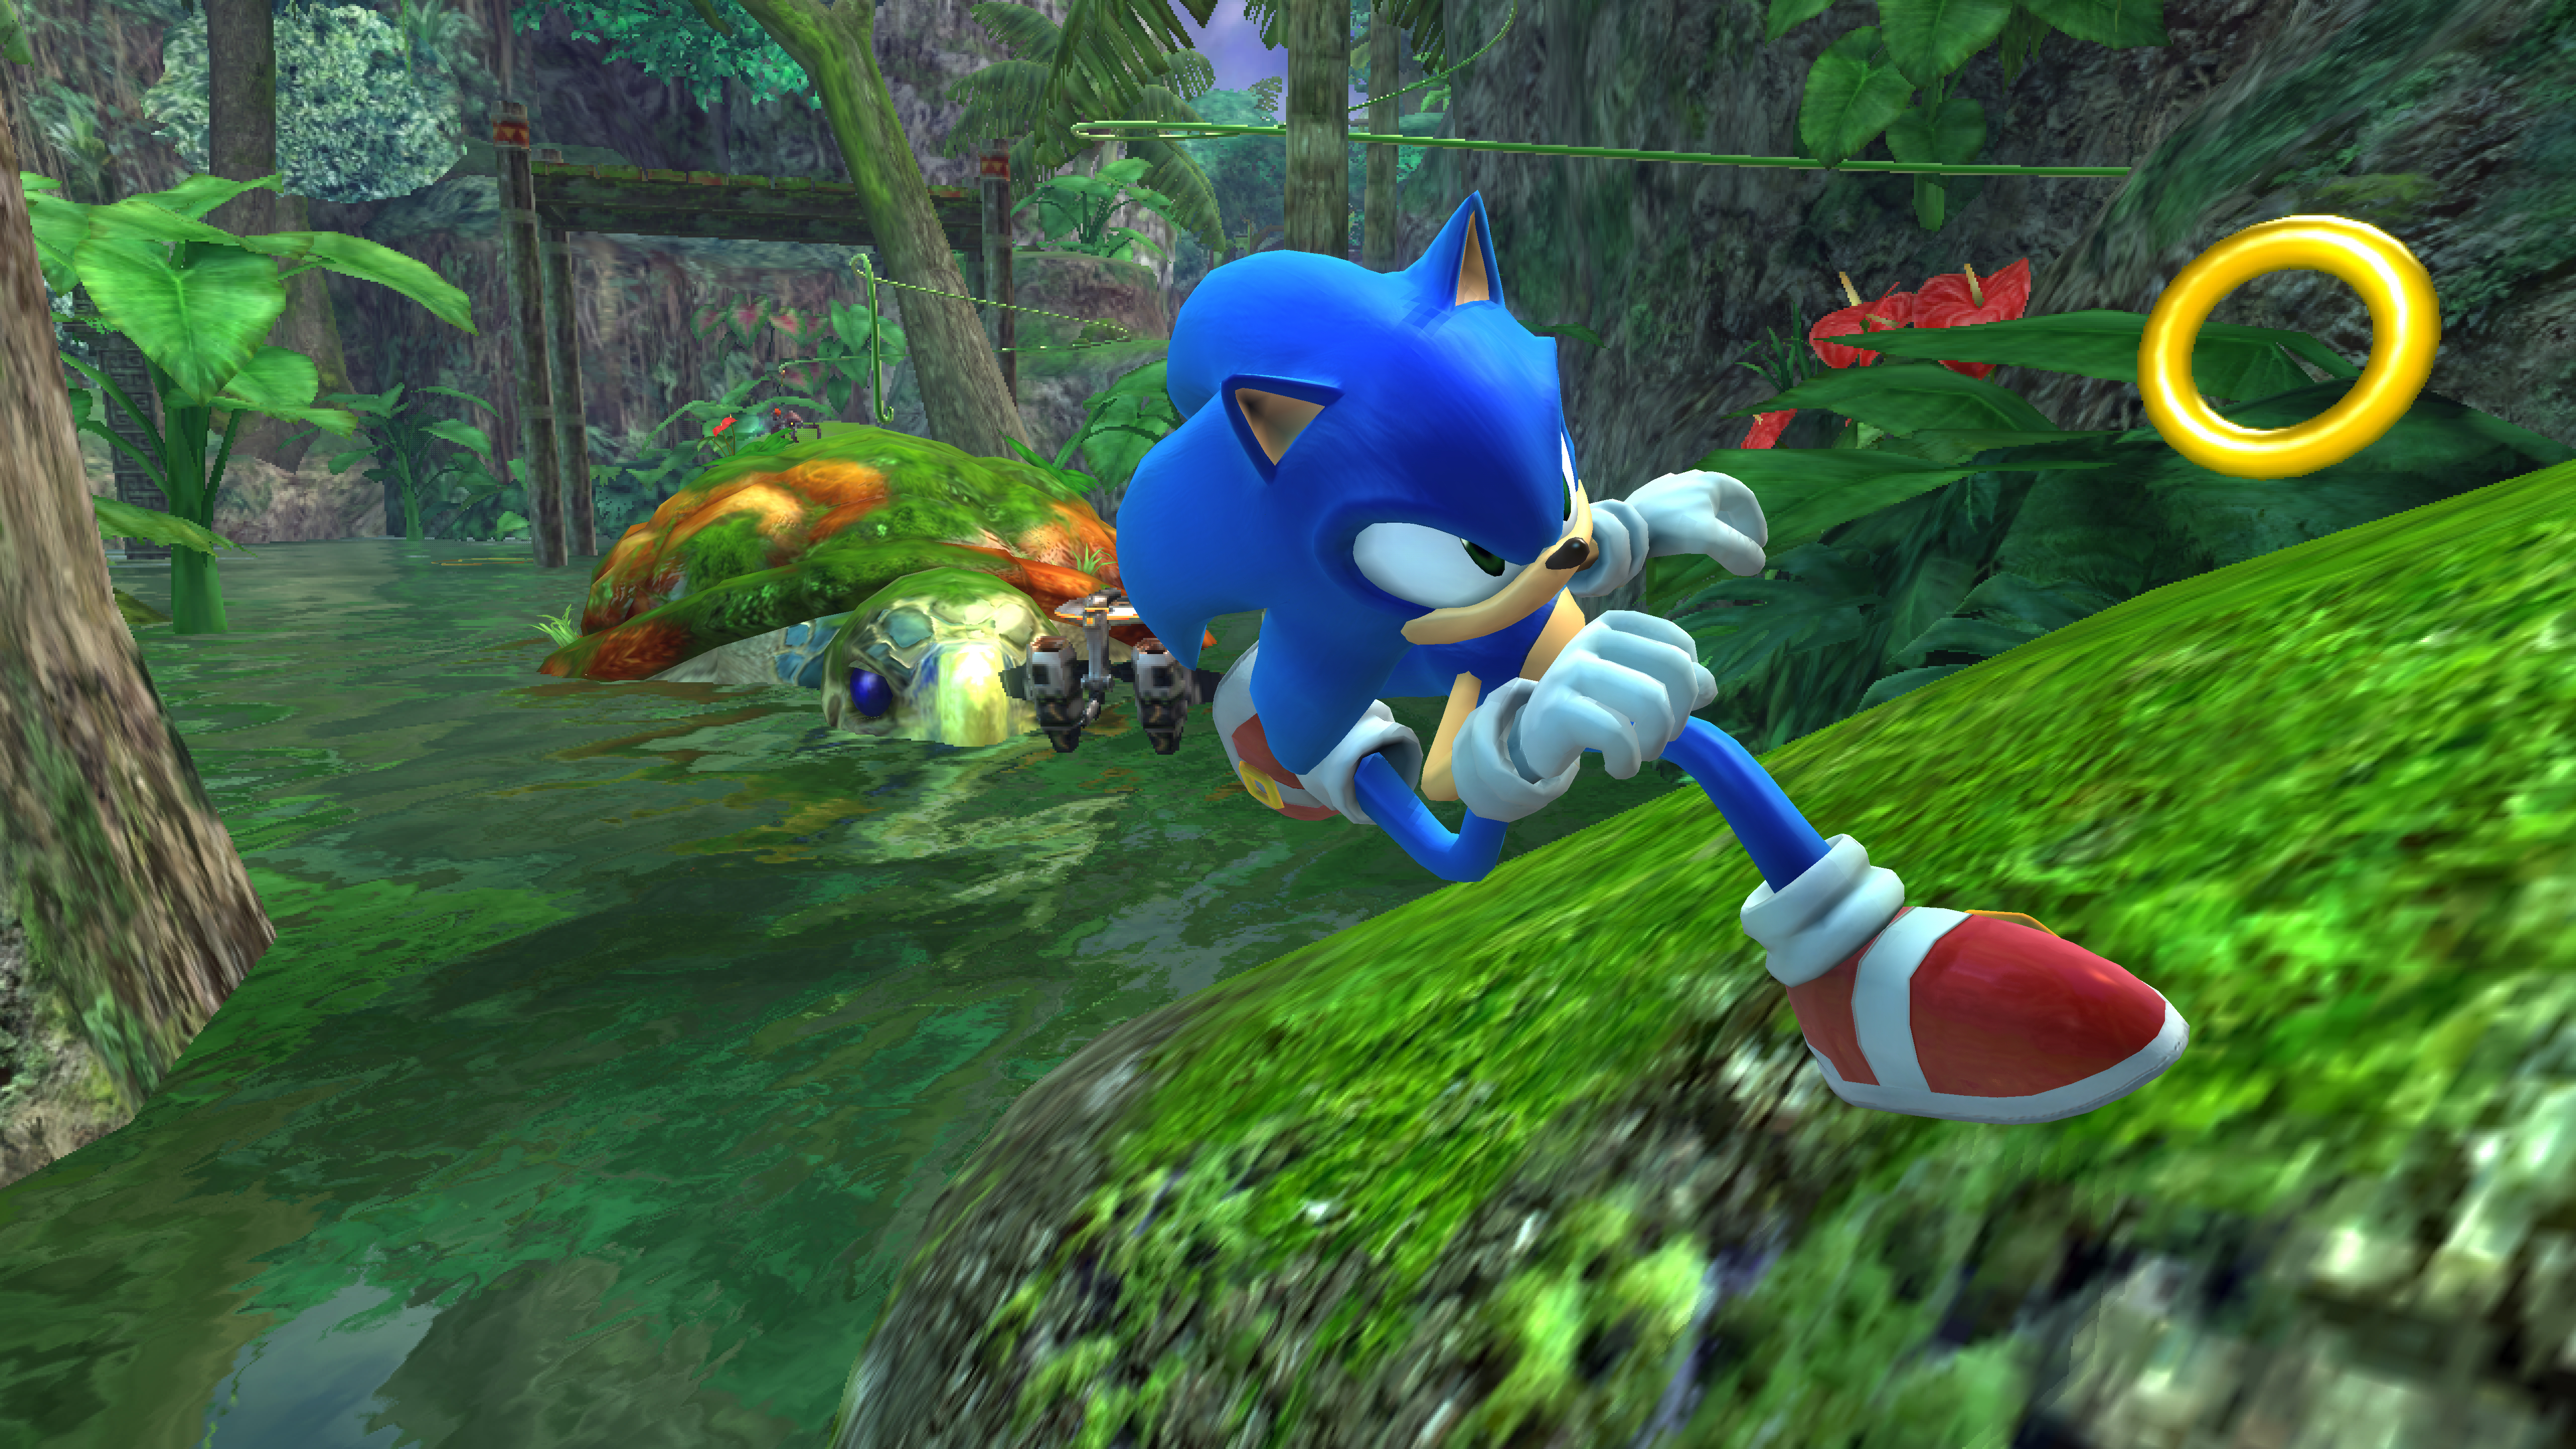 File:Sonic06screen56.jpg